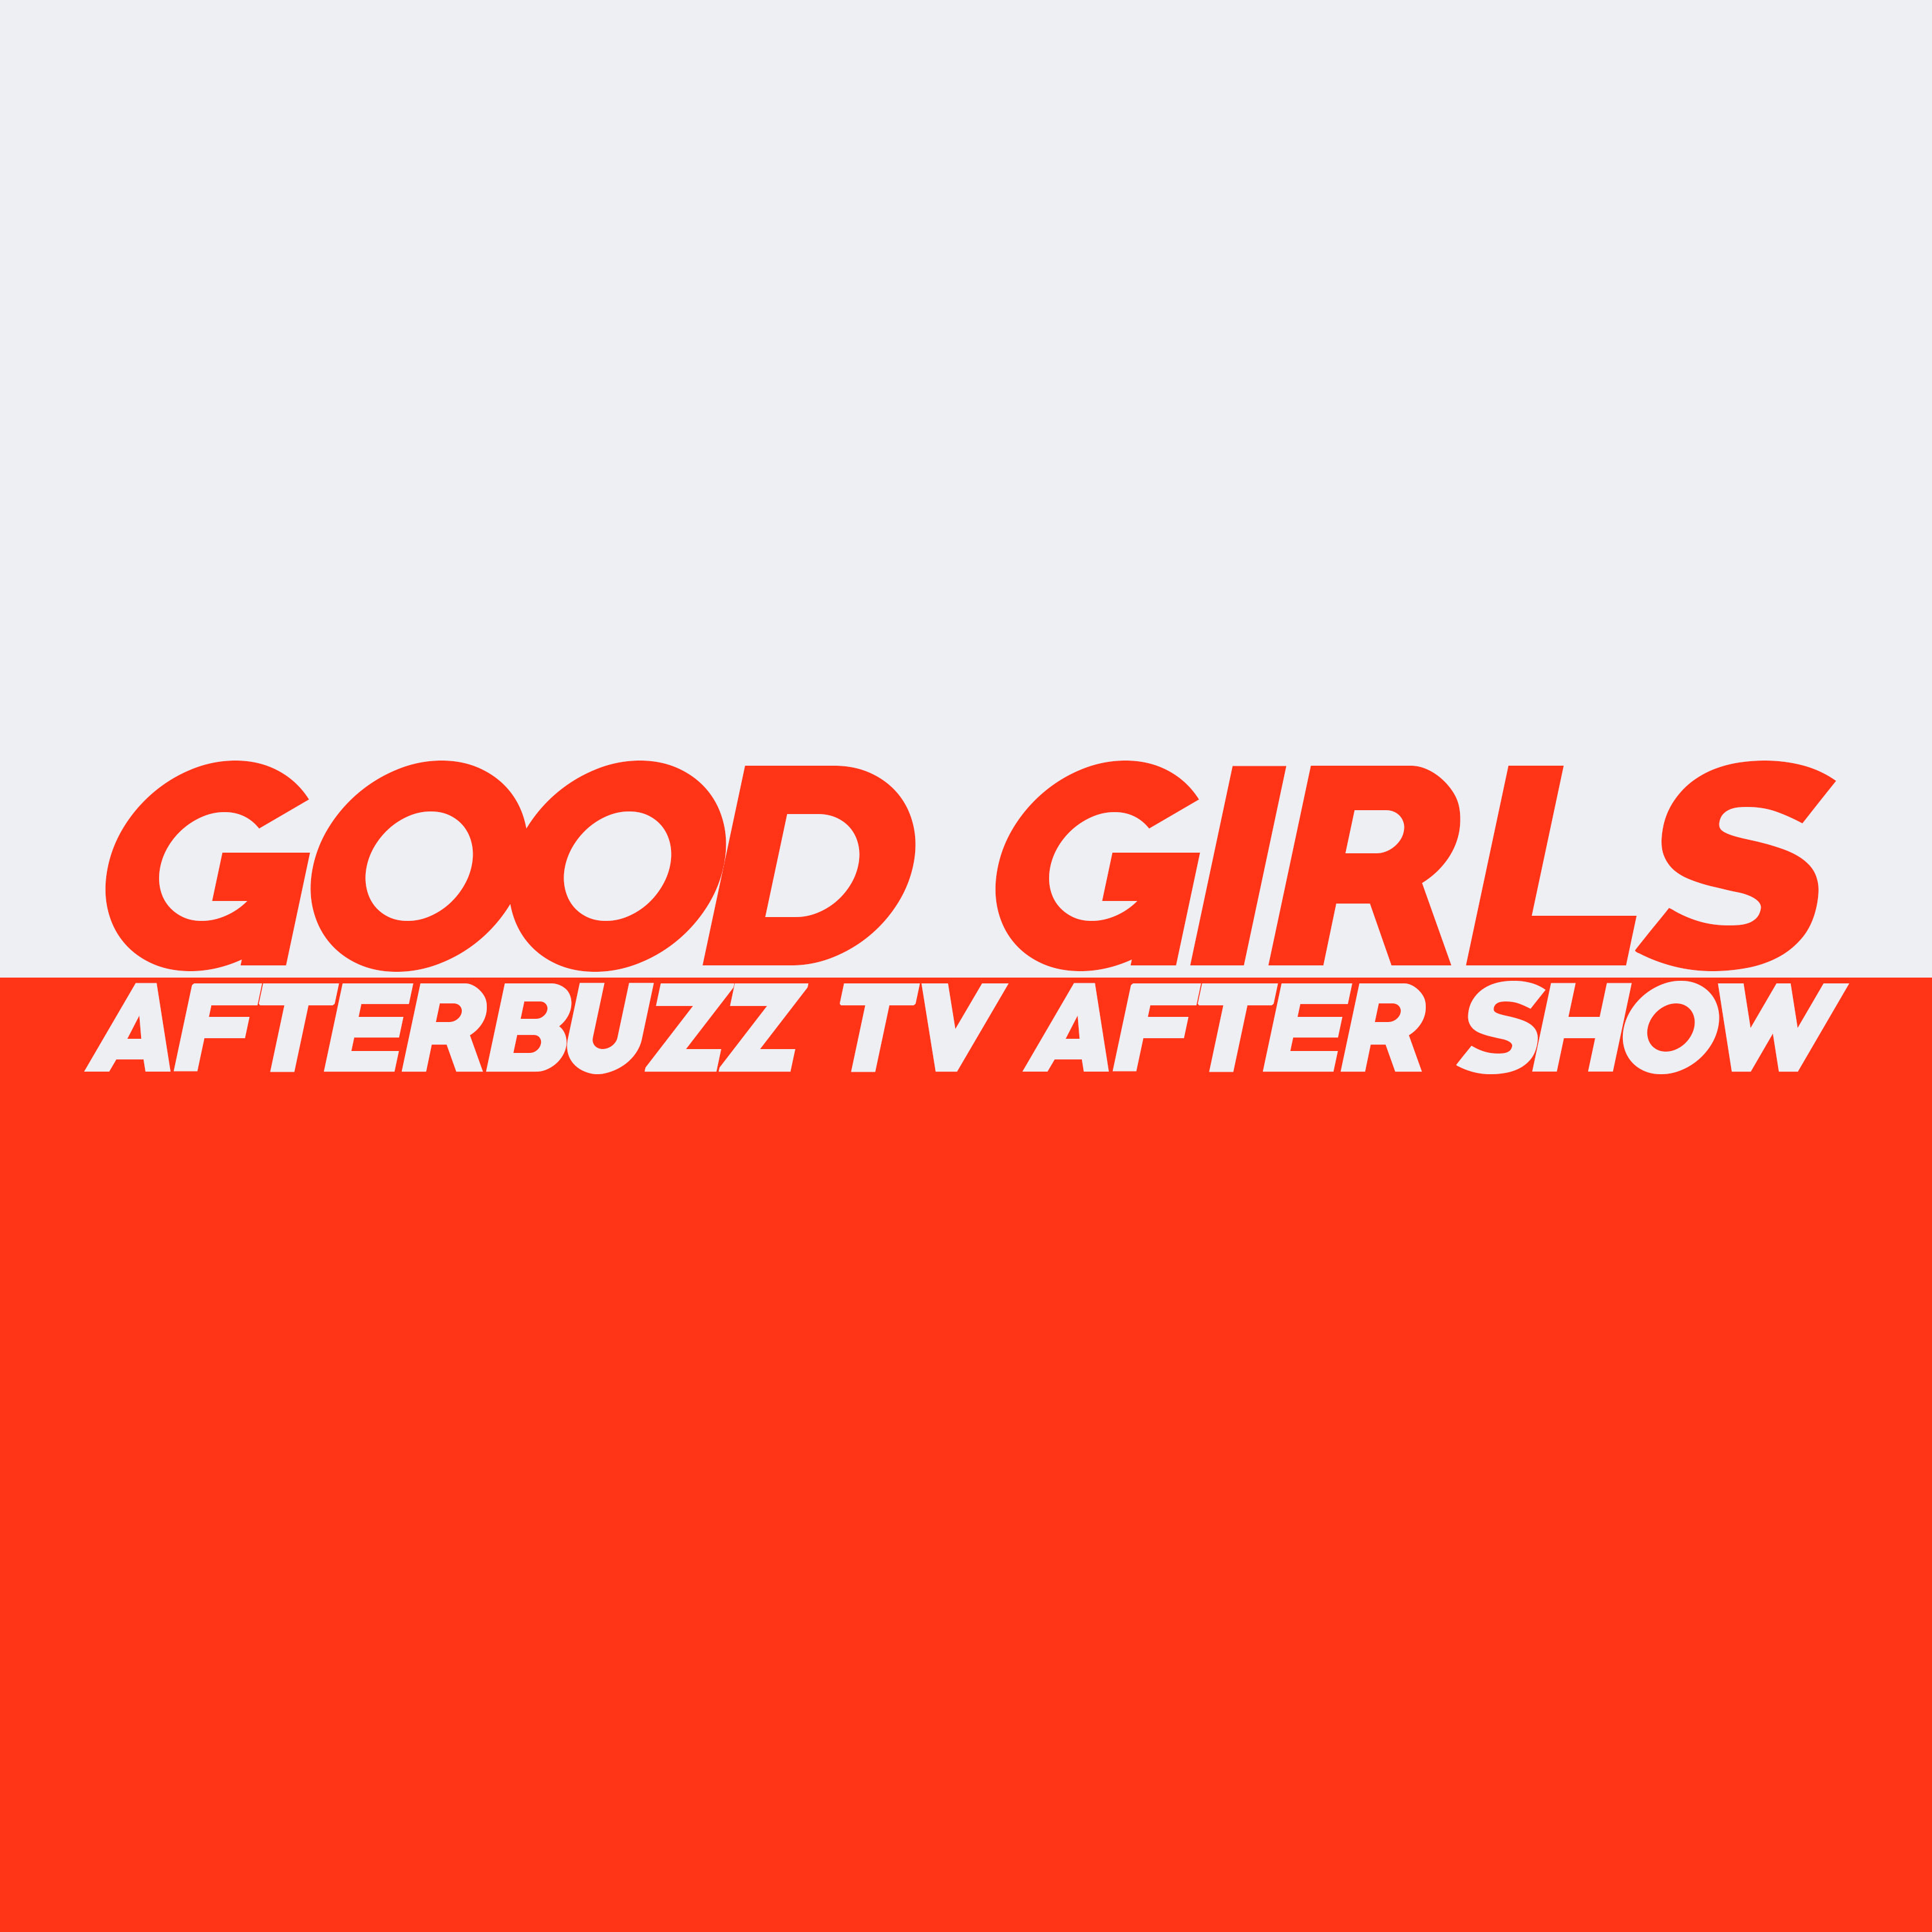 Good Girls After Show